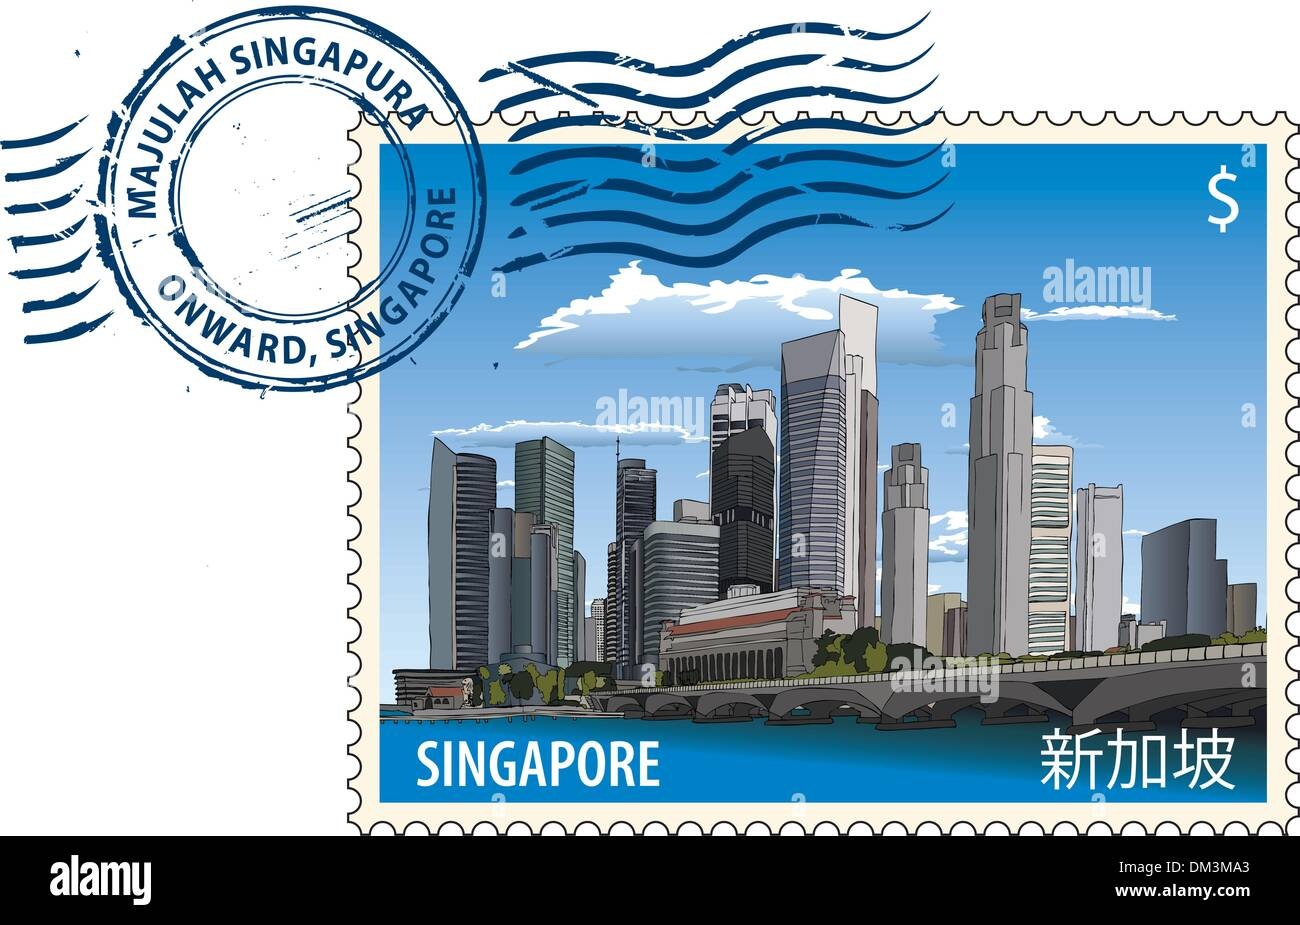 Postmark from Singapore - Stock Image